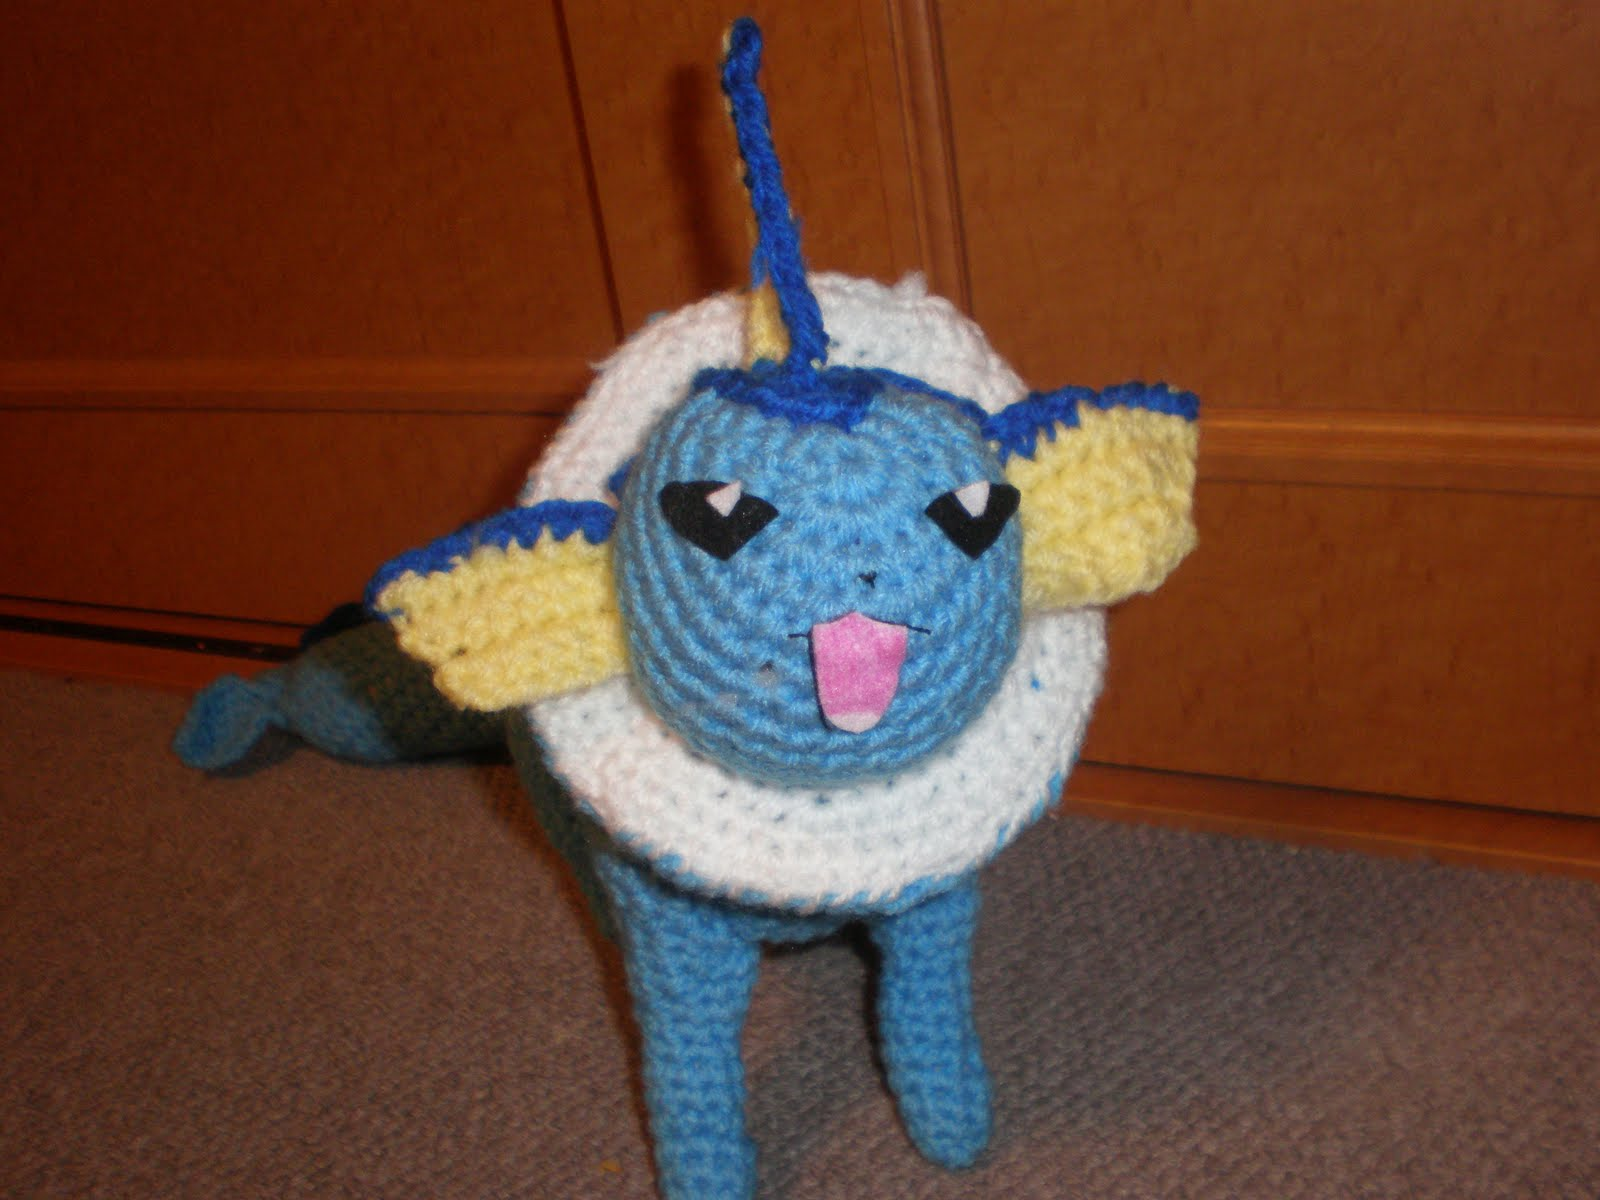 Amigurumi Pokemon Patterns Free : Free amigurumi patterns free crochet pattern for vaporeon